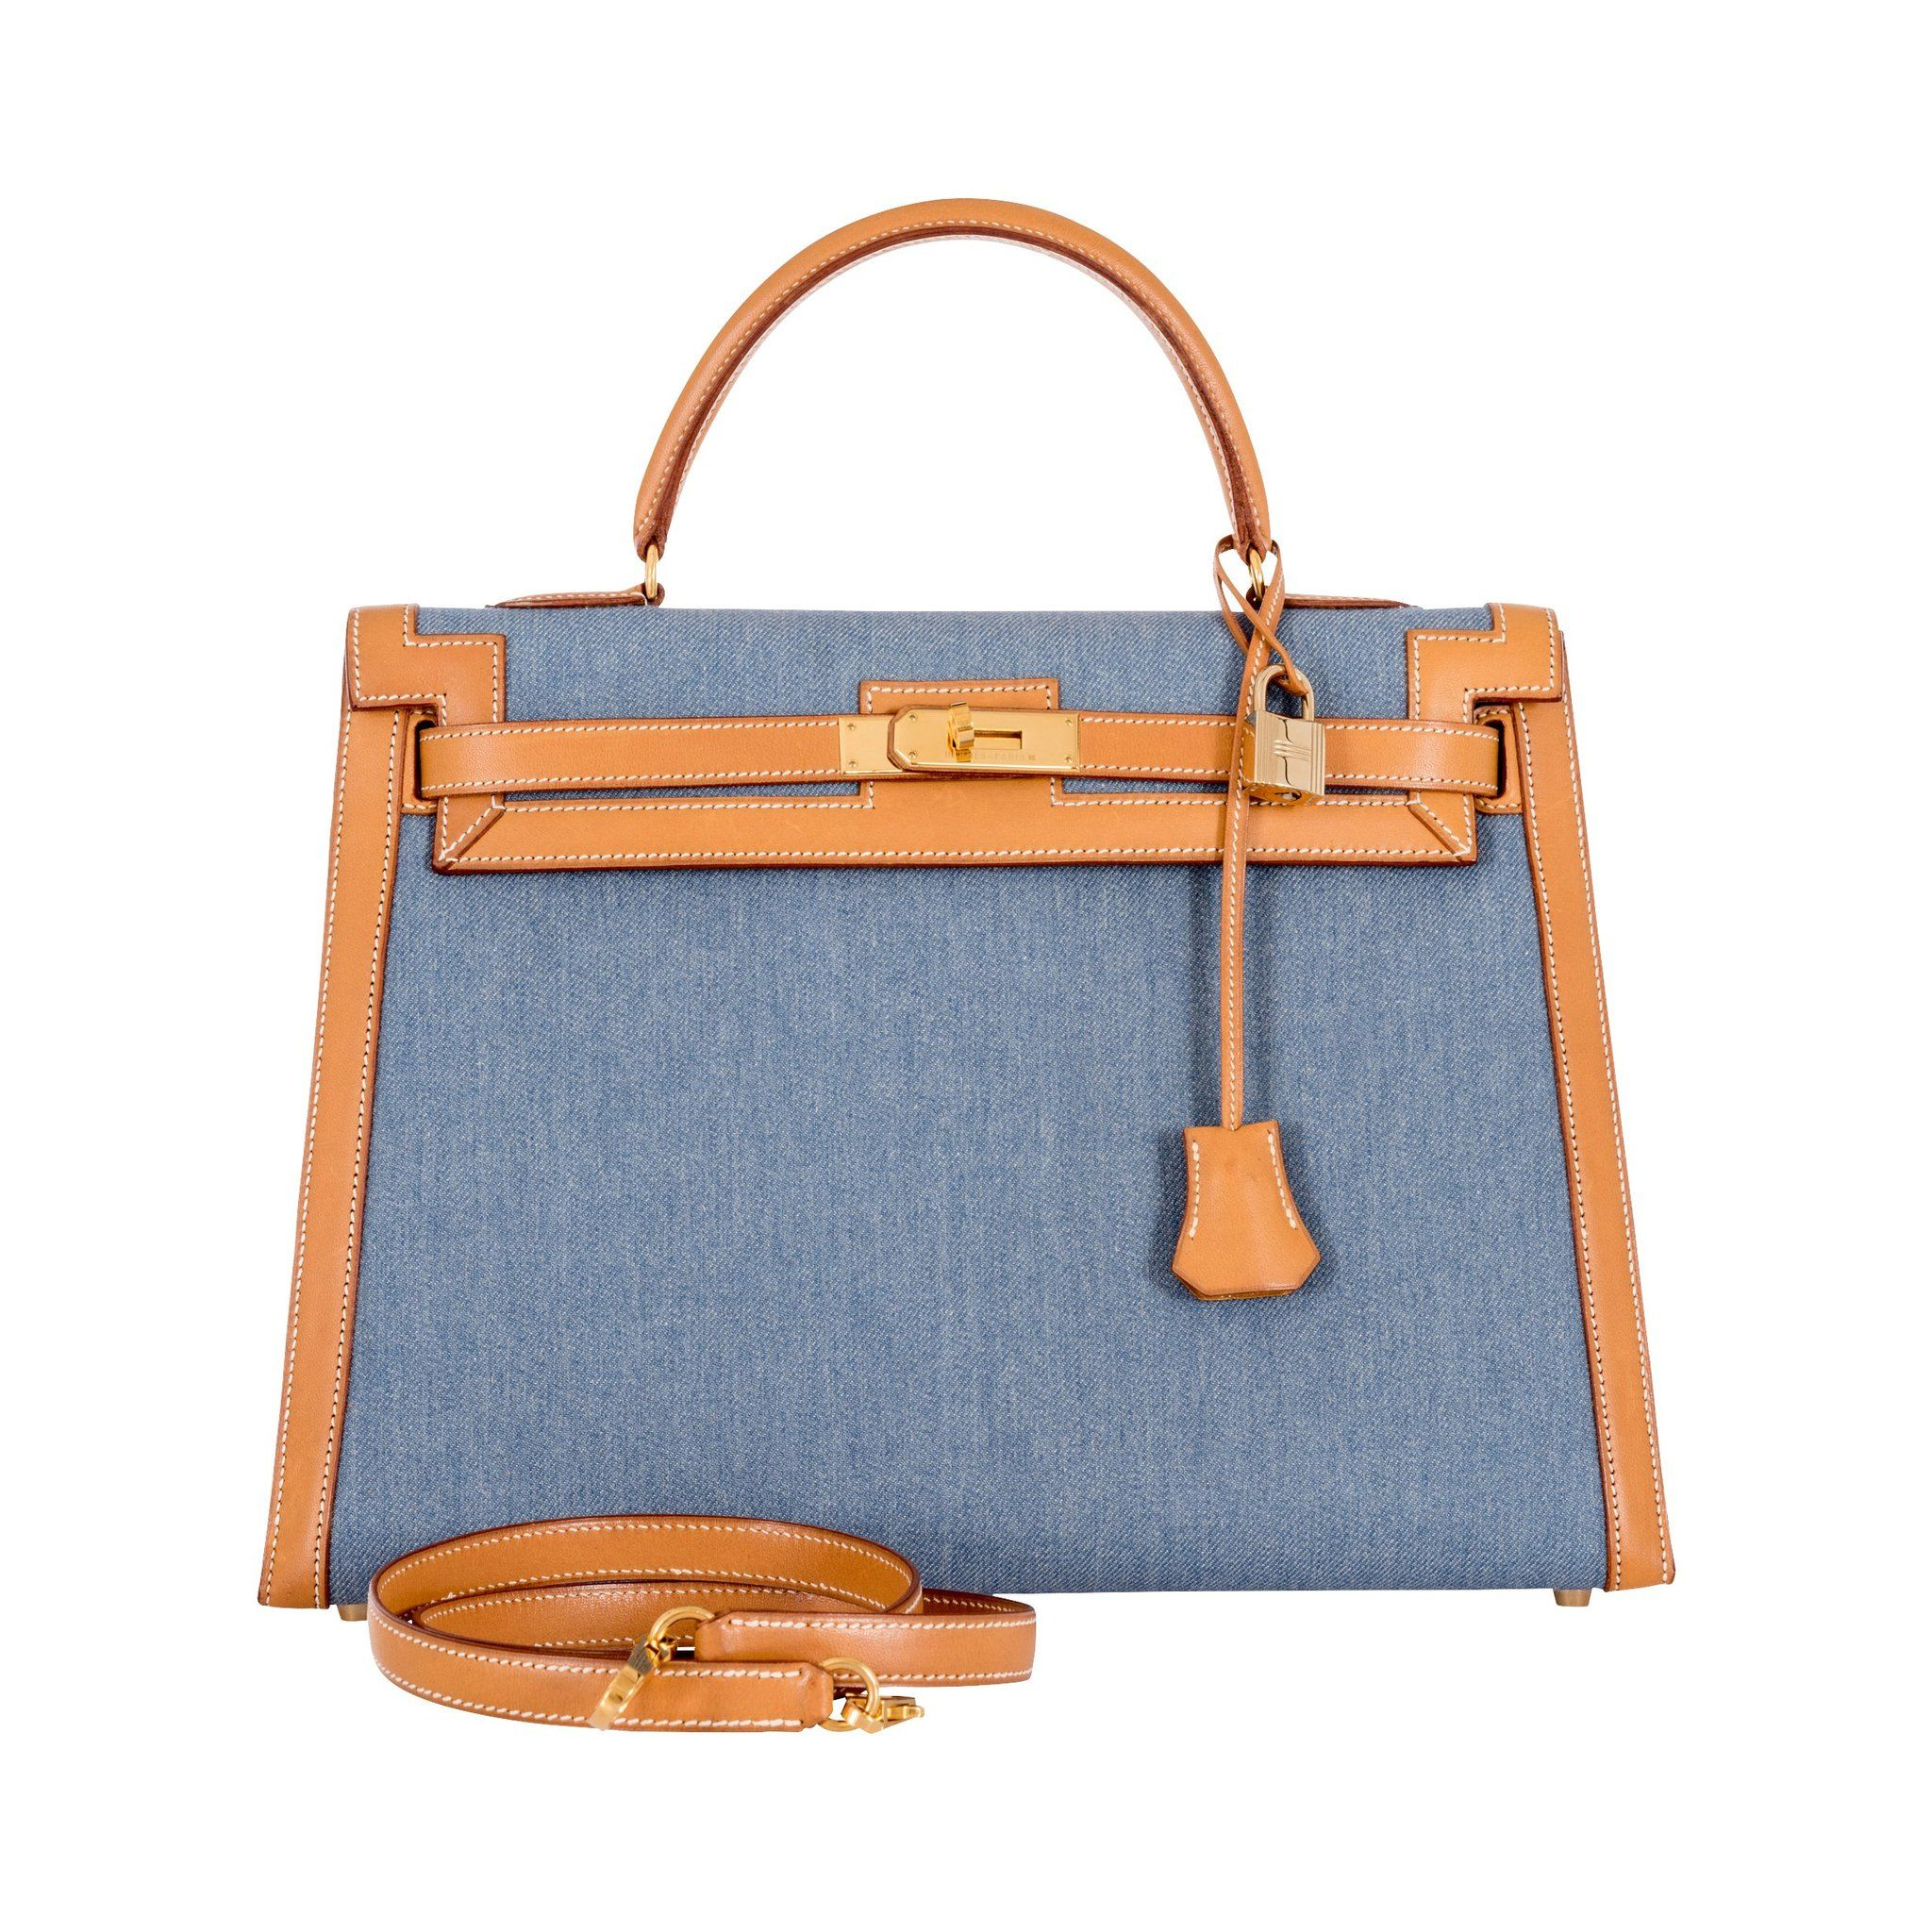 b4b95fa5b639 Hermes Kelly 35 Blue Denim With Barenia Gold Hardware Rare Limited-Kelly- Hermes-Blue-JaneFinds